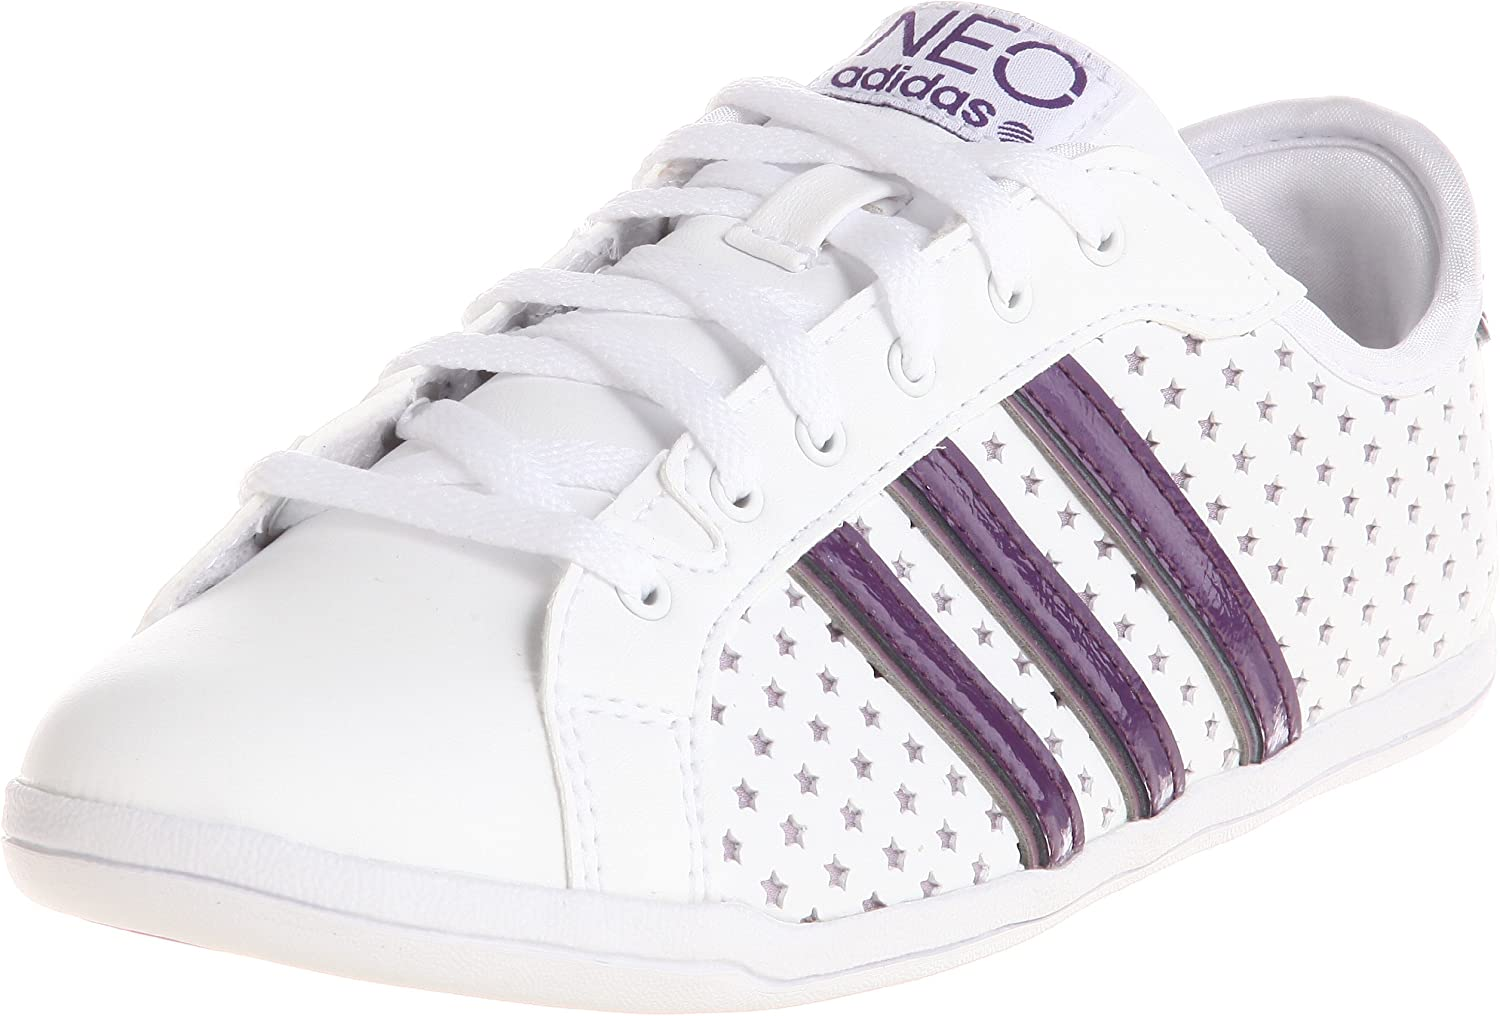 adidas Neo Label Derby QT Womens Shoes Trainers G52332 White Size ...